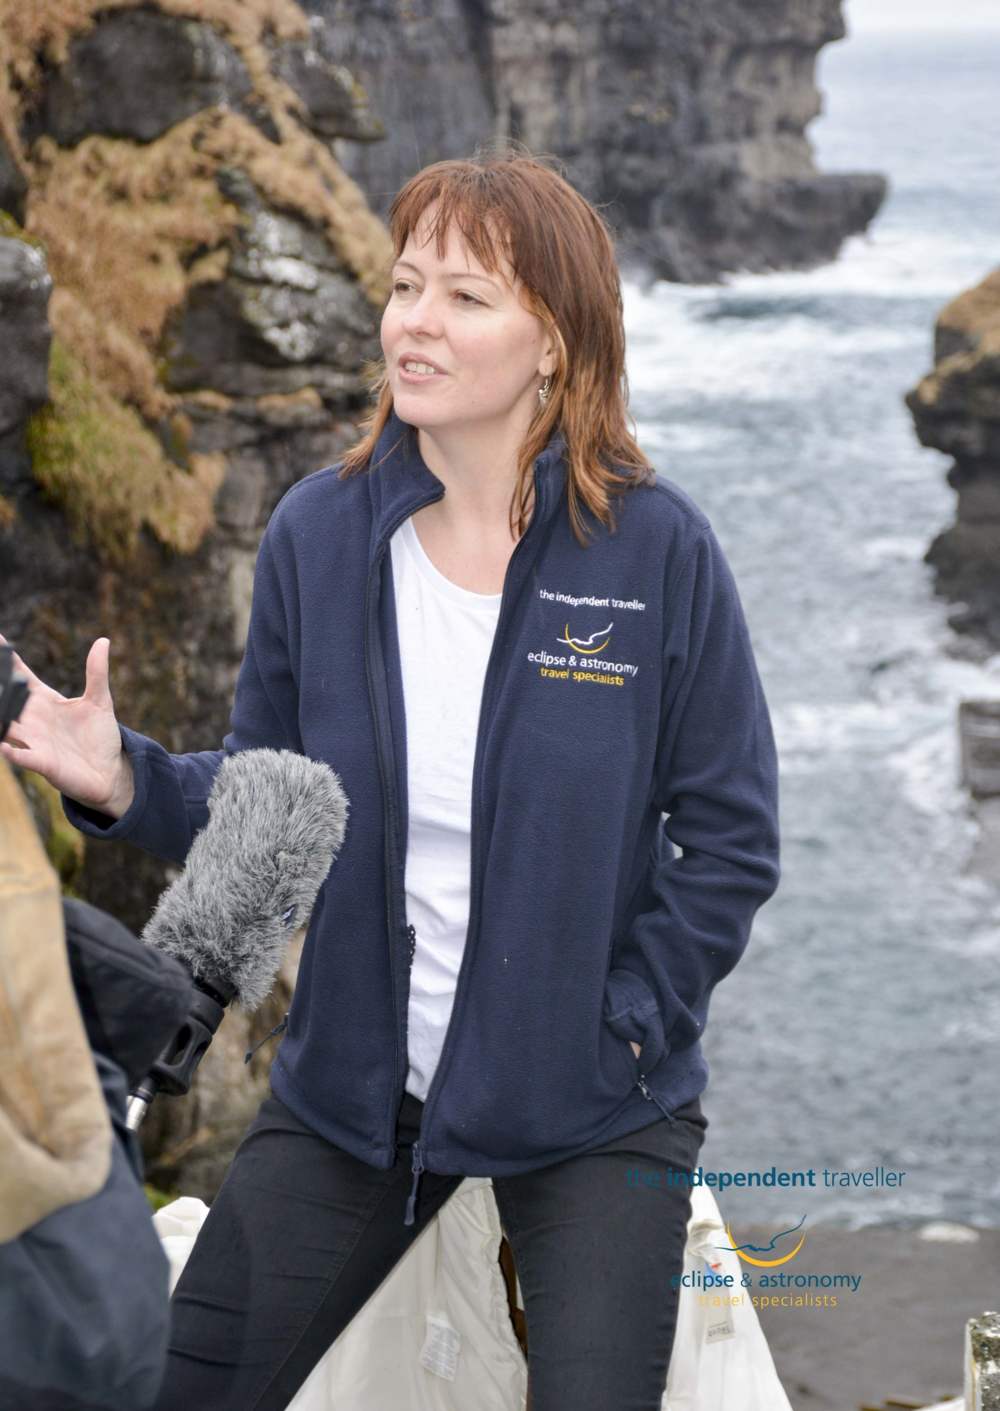 Kate being interviewed by Al Jazeera as part of The Independent Travellers TSE tour, on the 19th March 2015.